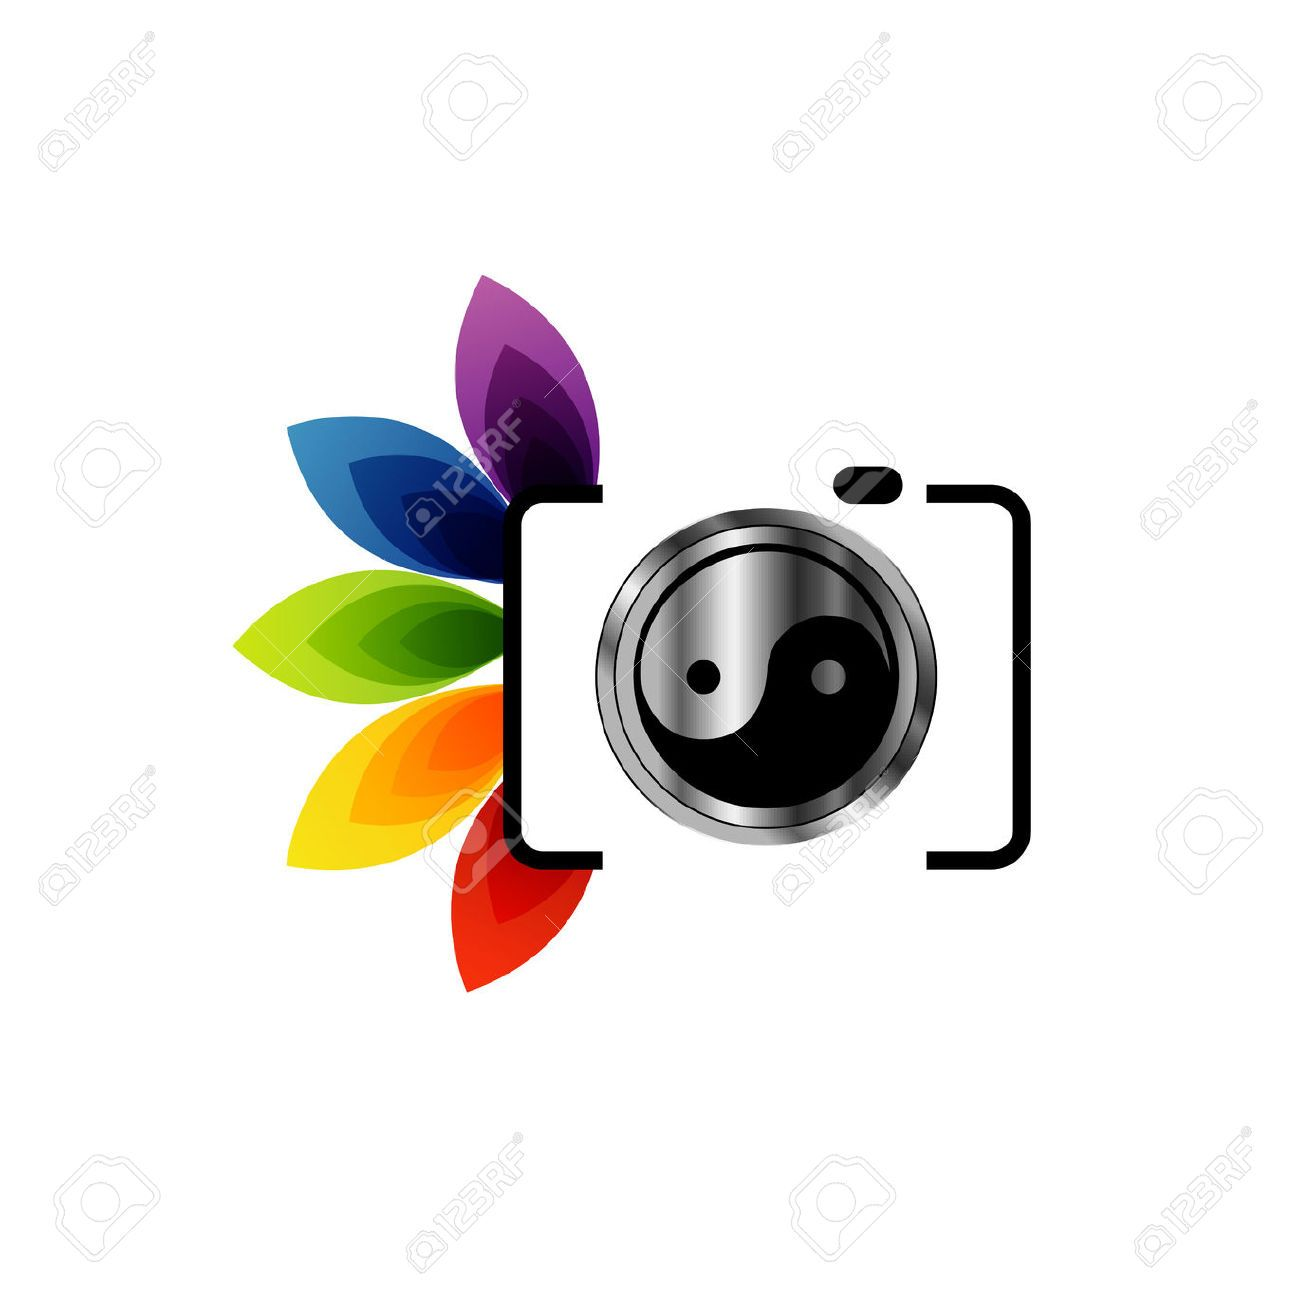 Camera Logo Images, Stock Pictures, Royalty Free Camera ...